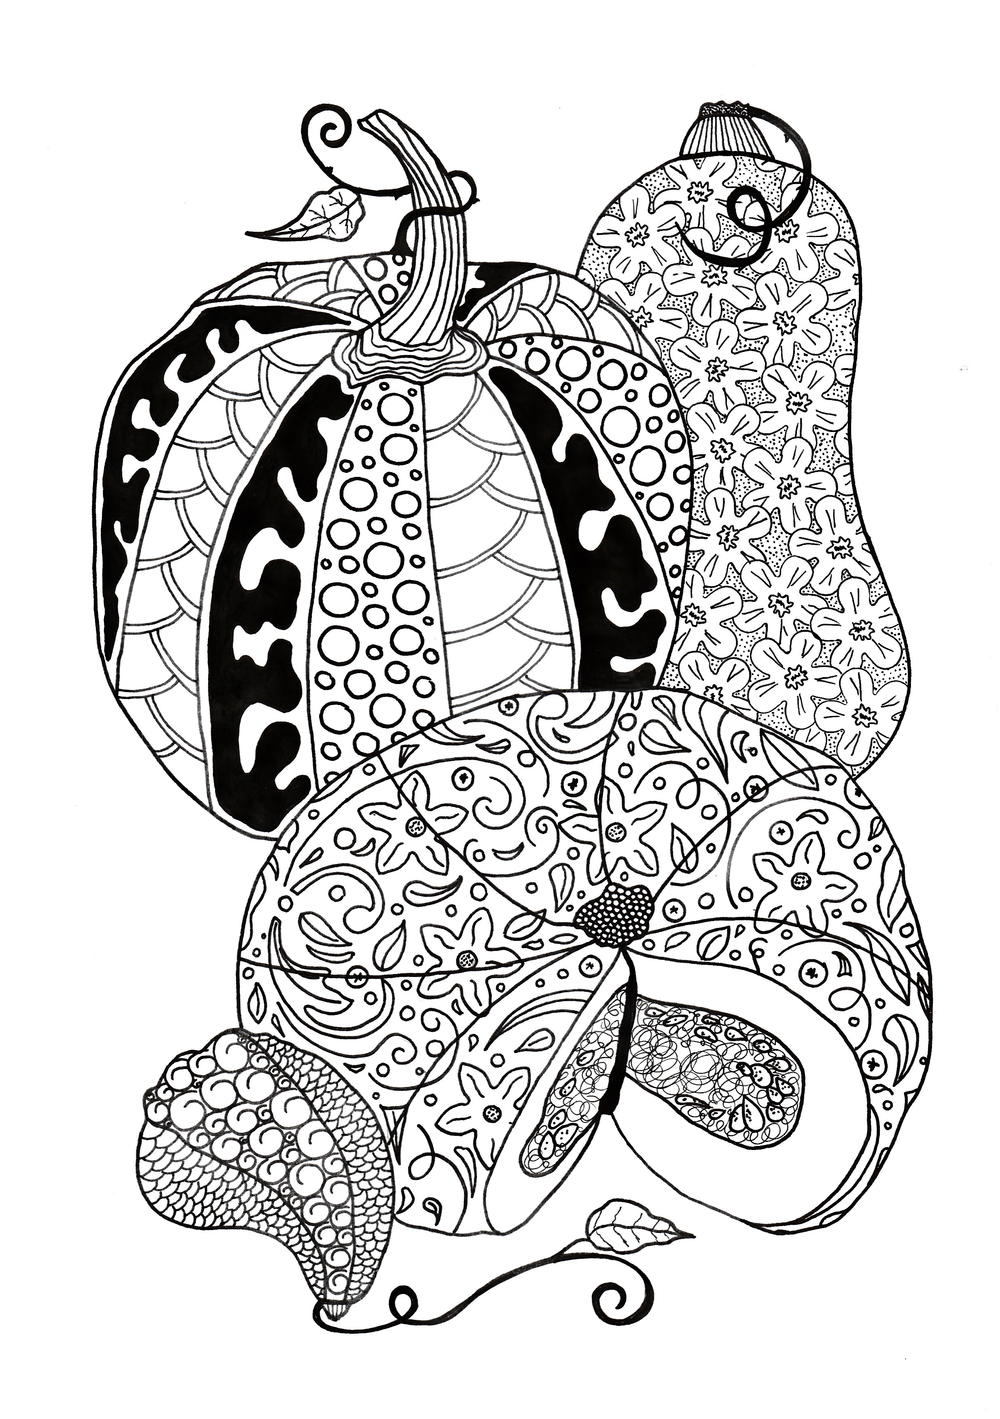 pumpkin coloring pages for adults - Pumpkin Feast Adult Coloring Page